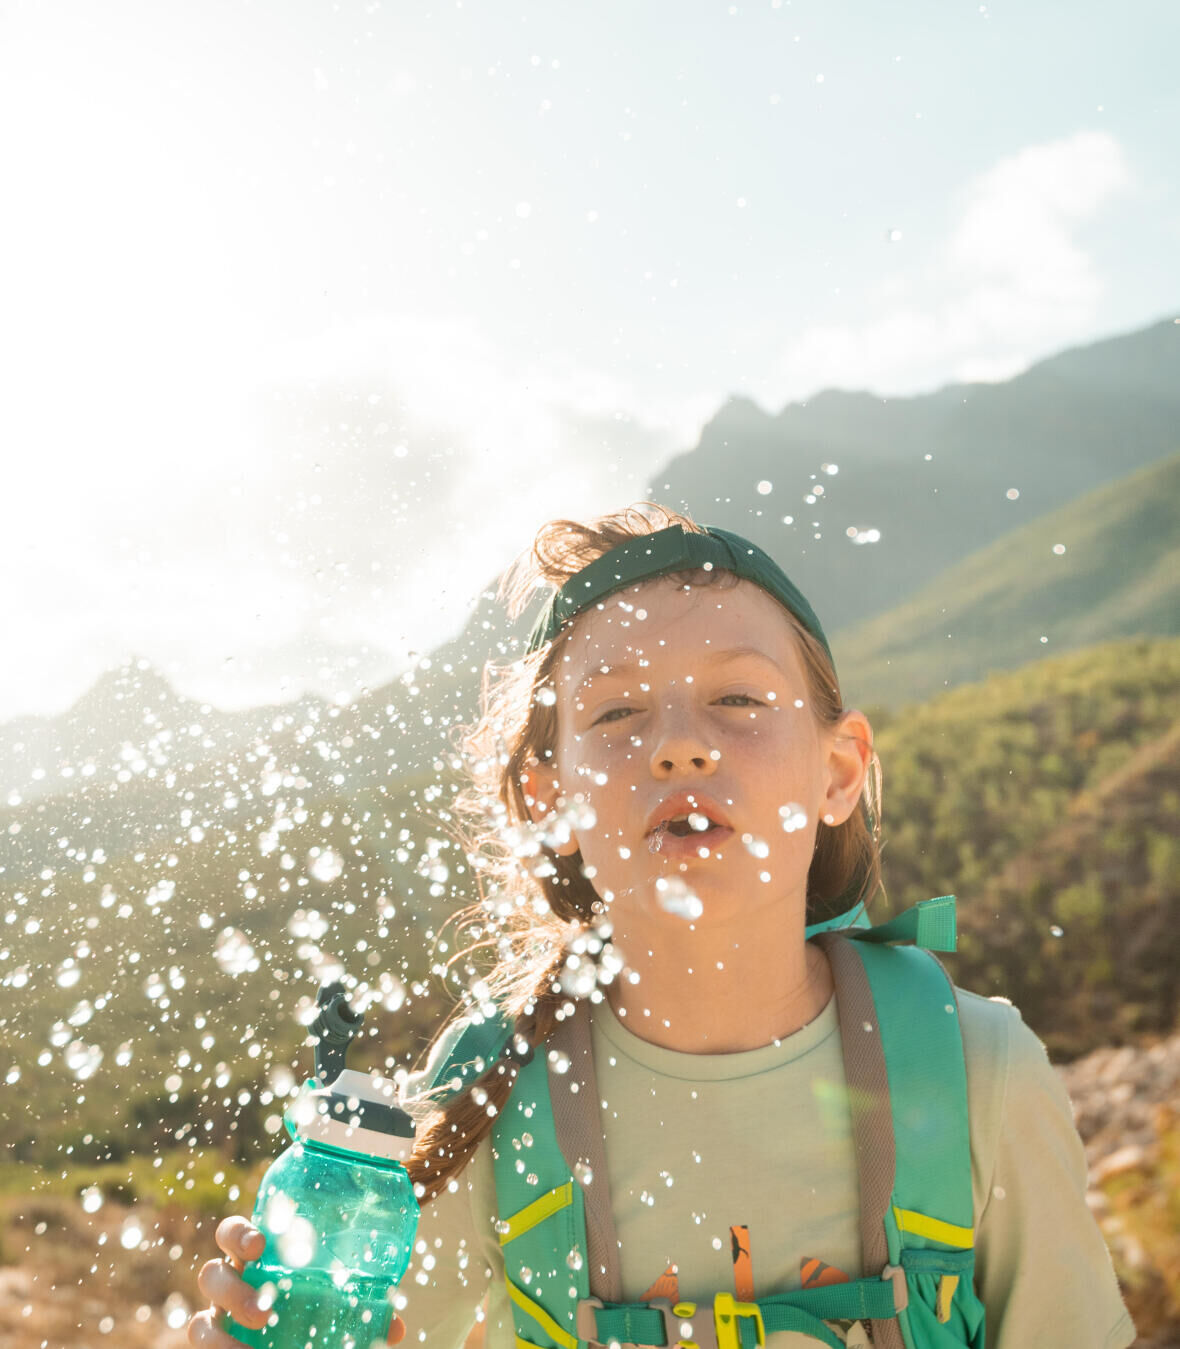 How to choose a hiking water bottle?